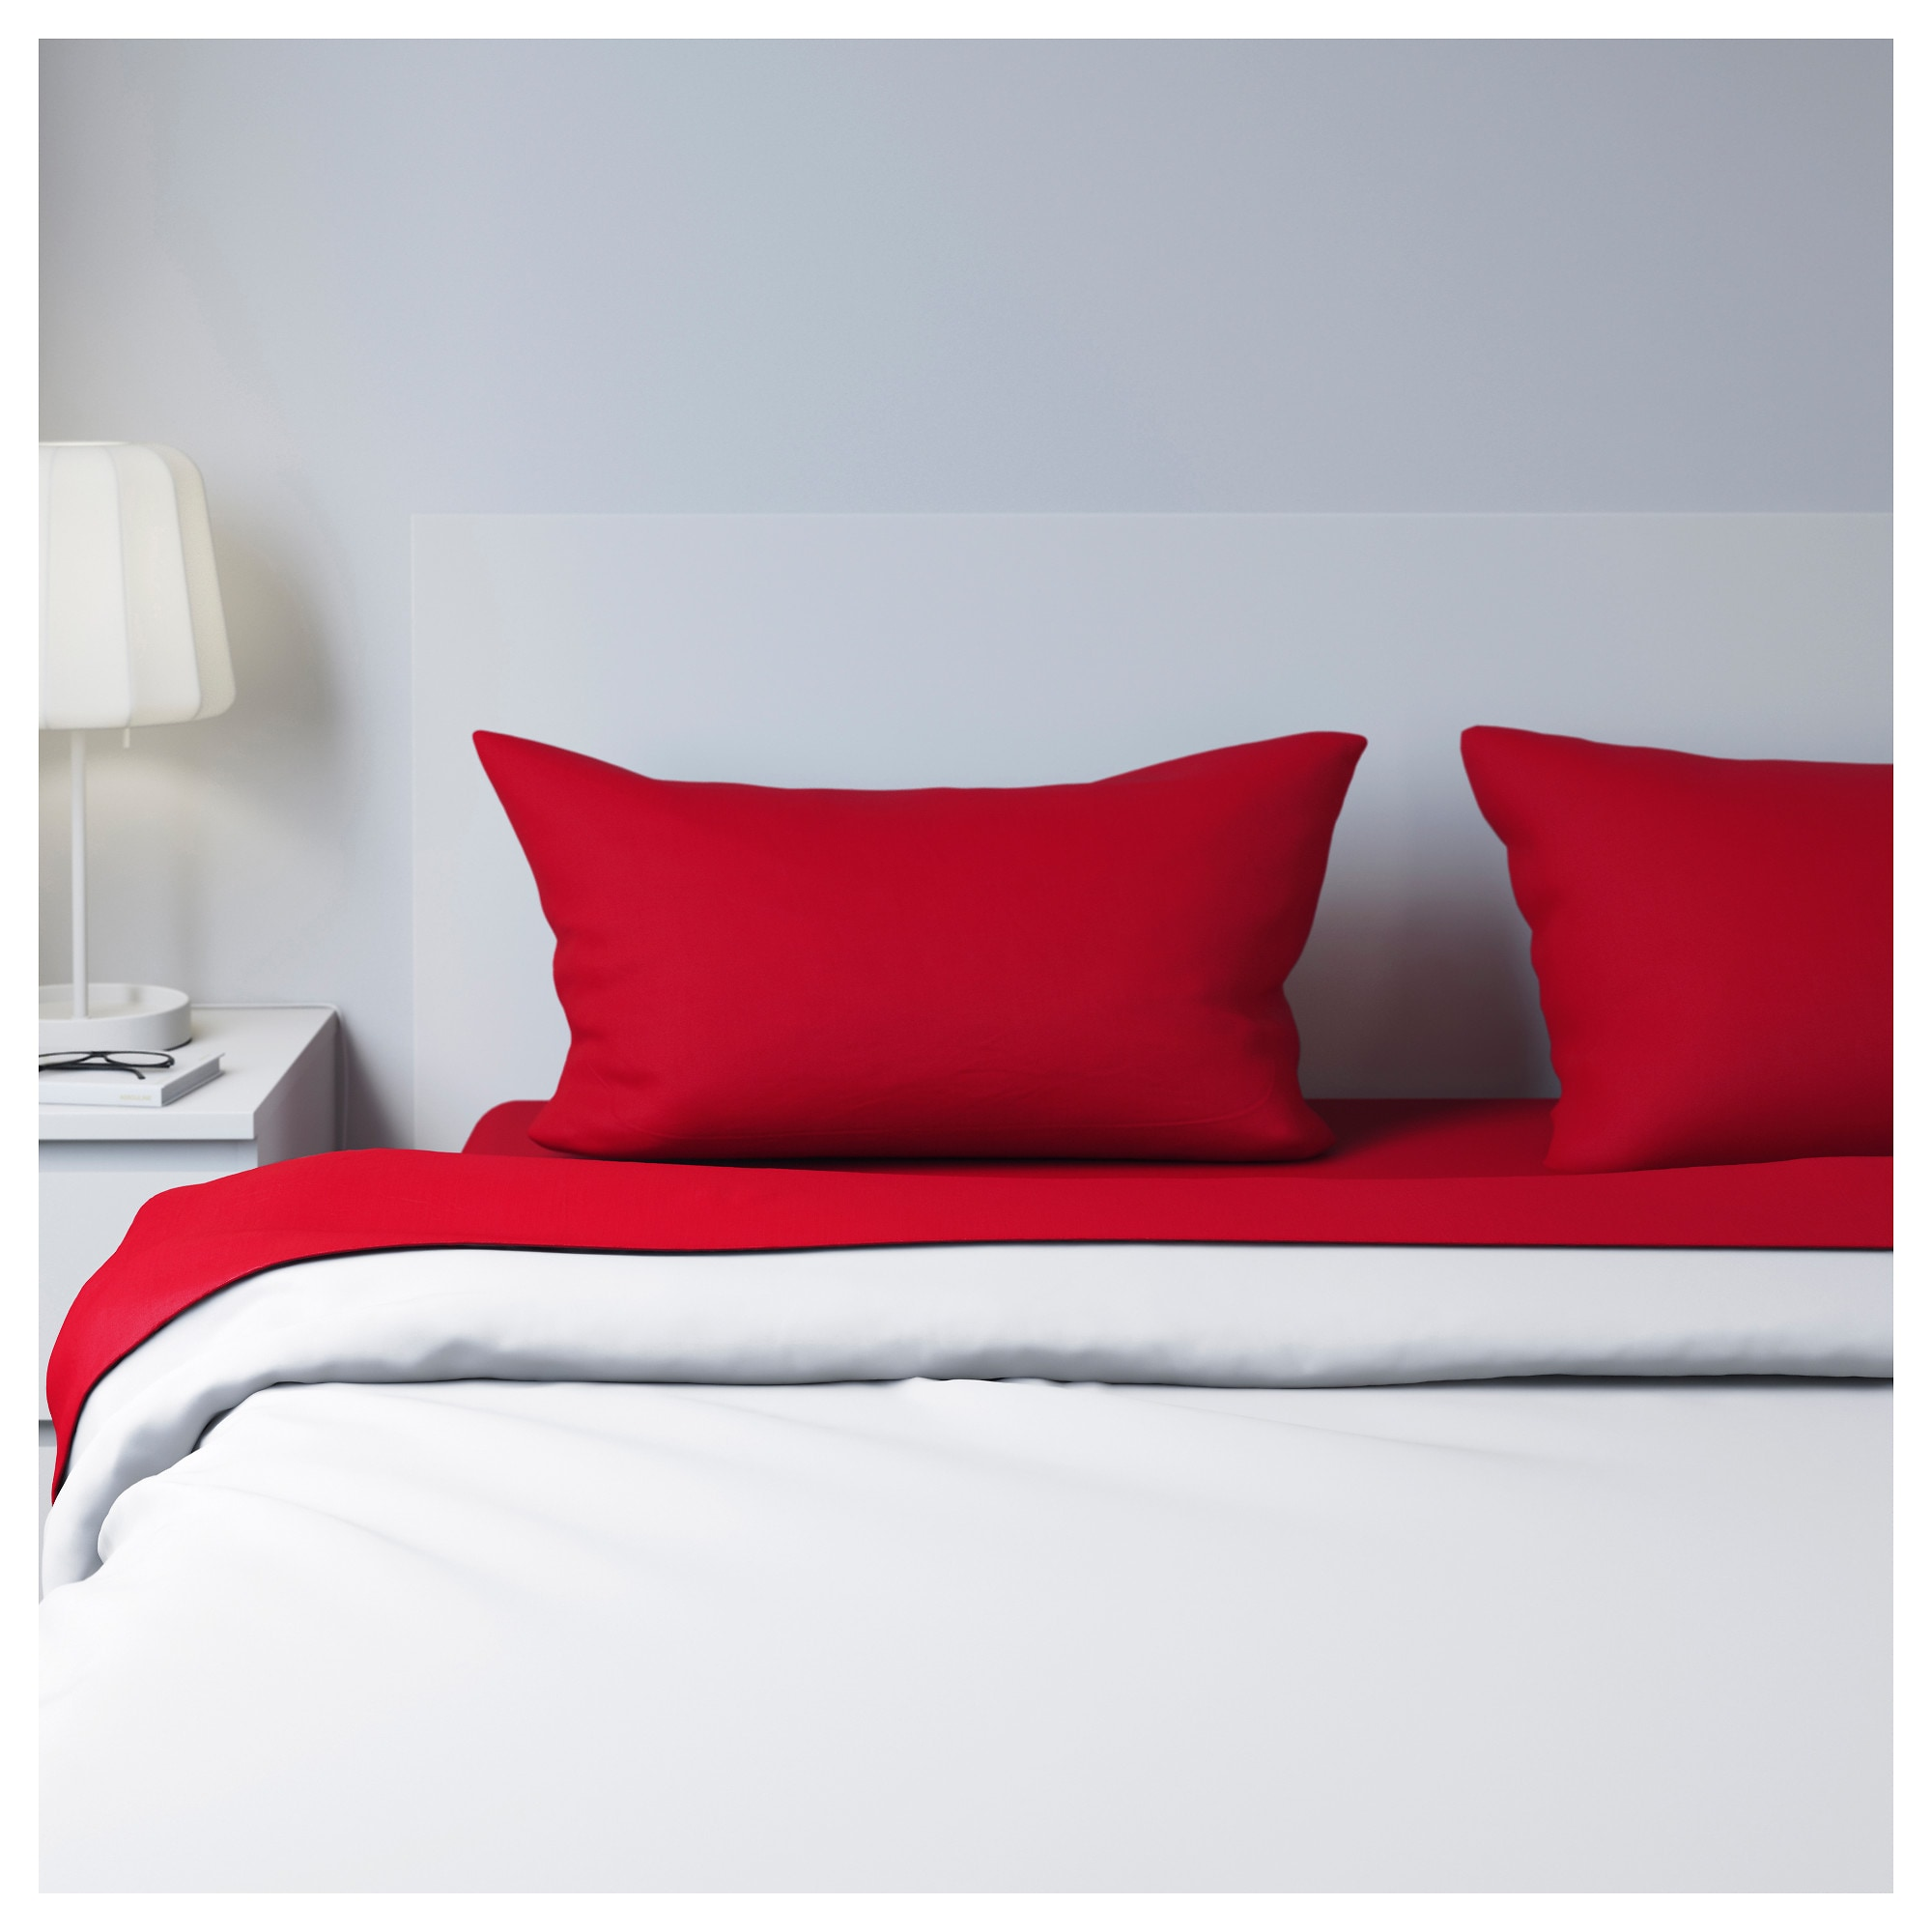 White and red bed sheets - Inter Ikea Systems B V 1999 2016 Privacy Policy